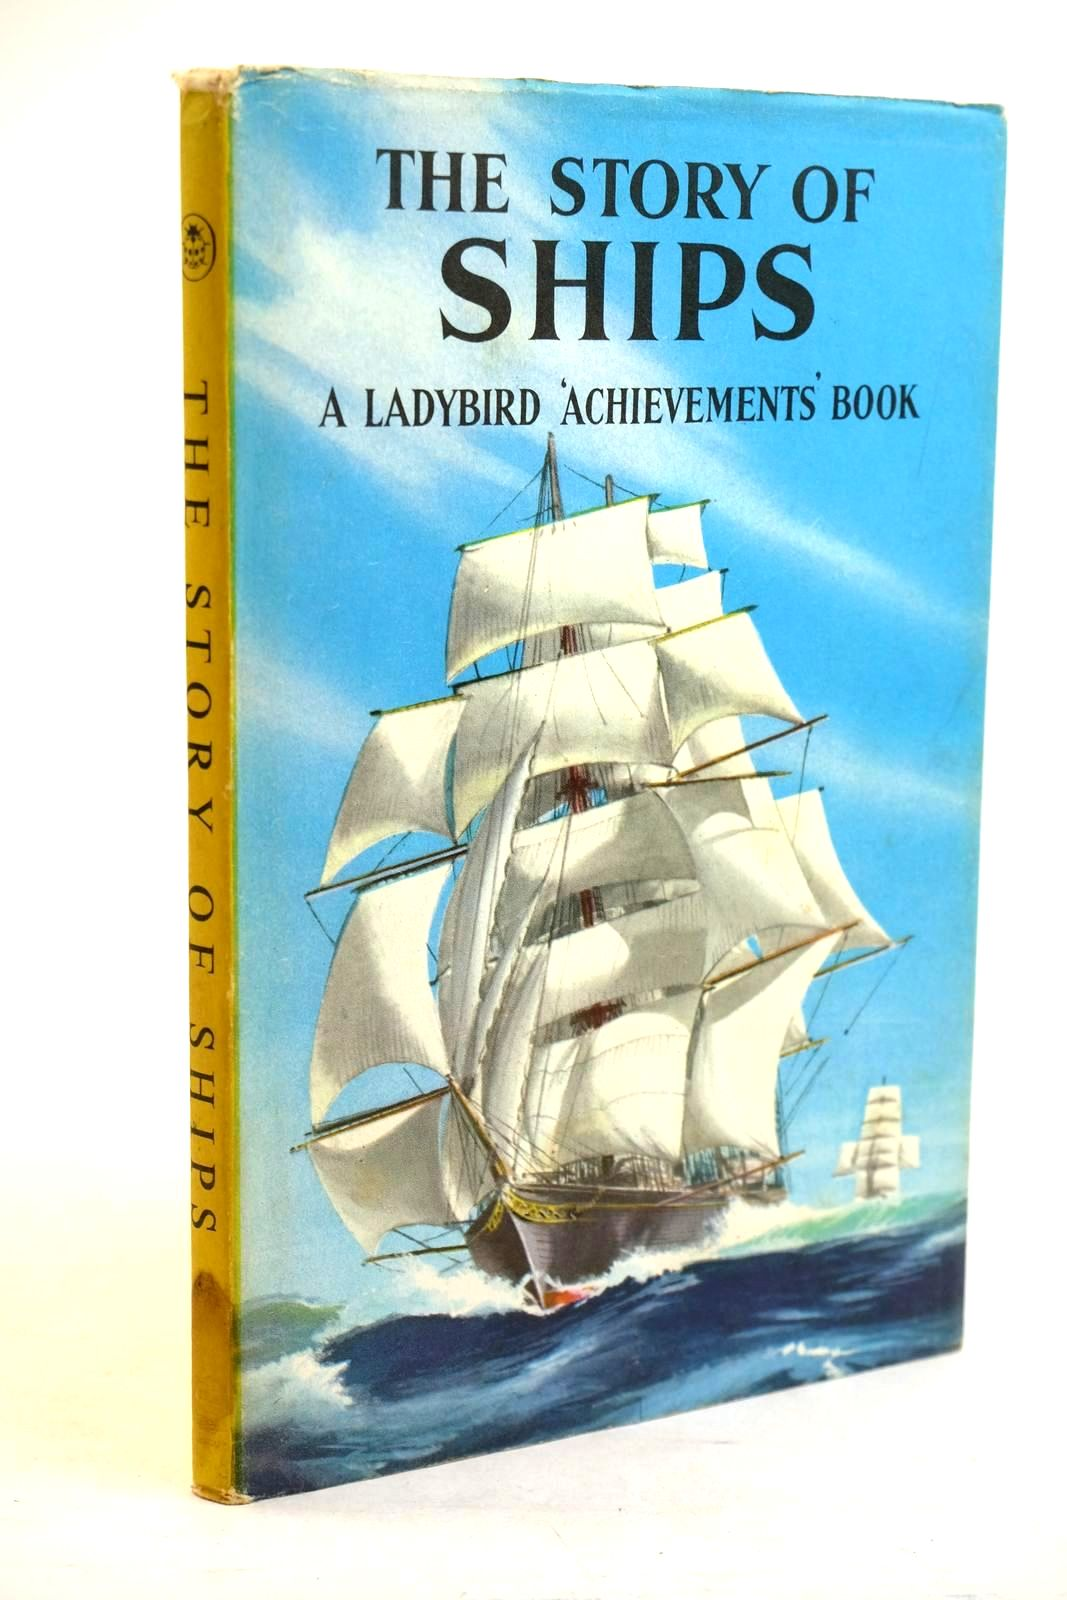 Photo of THE STORY OF SHIPS written by Bowood, Richard illustrated by Ayton, Robert published by Wills & Hepworth Ltd. (STOCK CODE: 1320645)  for sale by Stella & Rose's Books